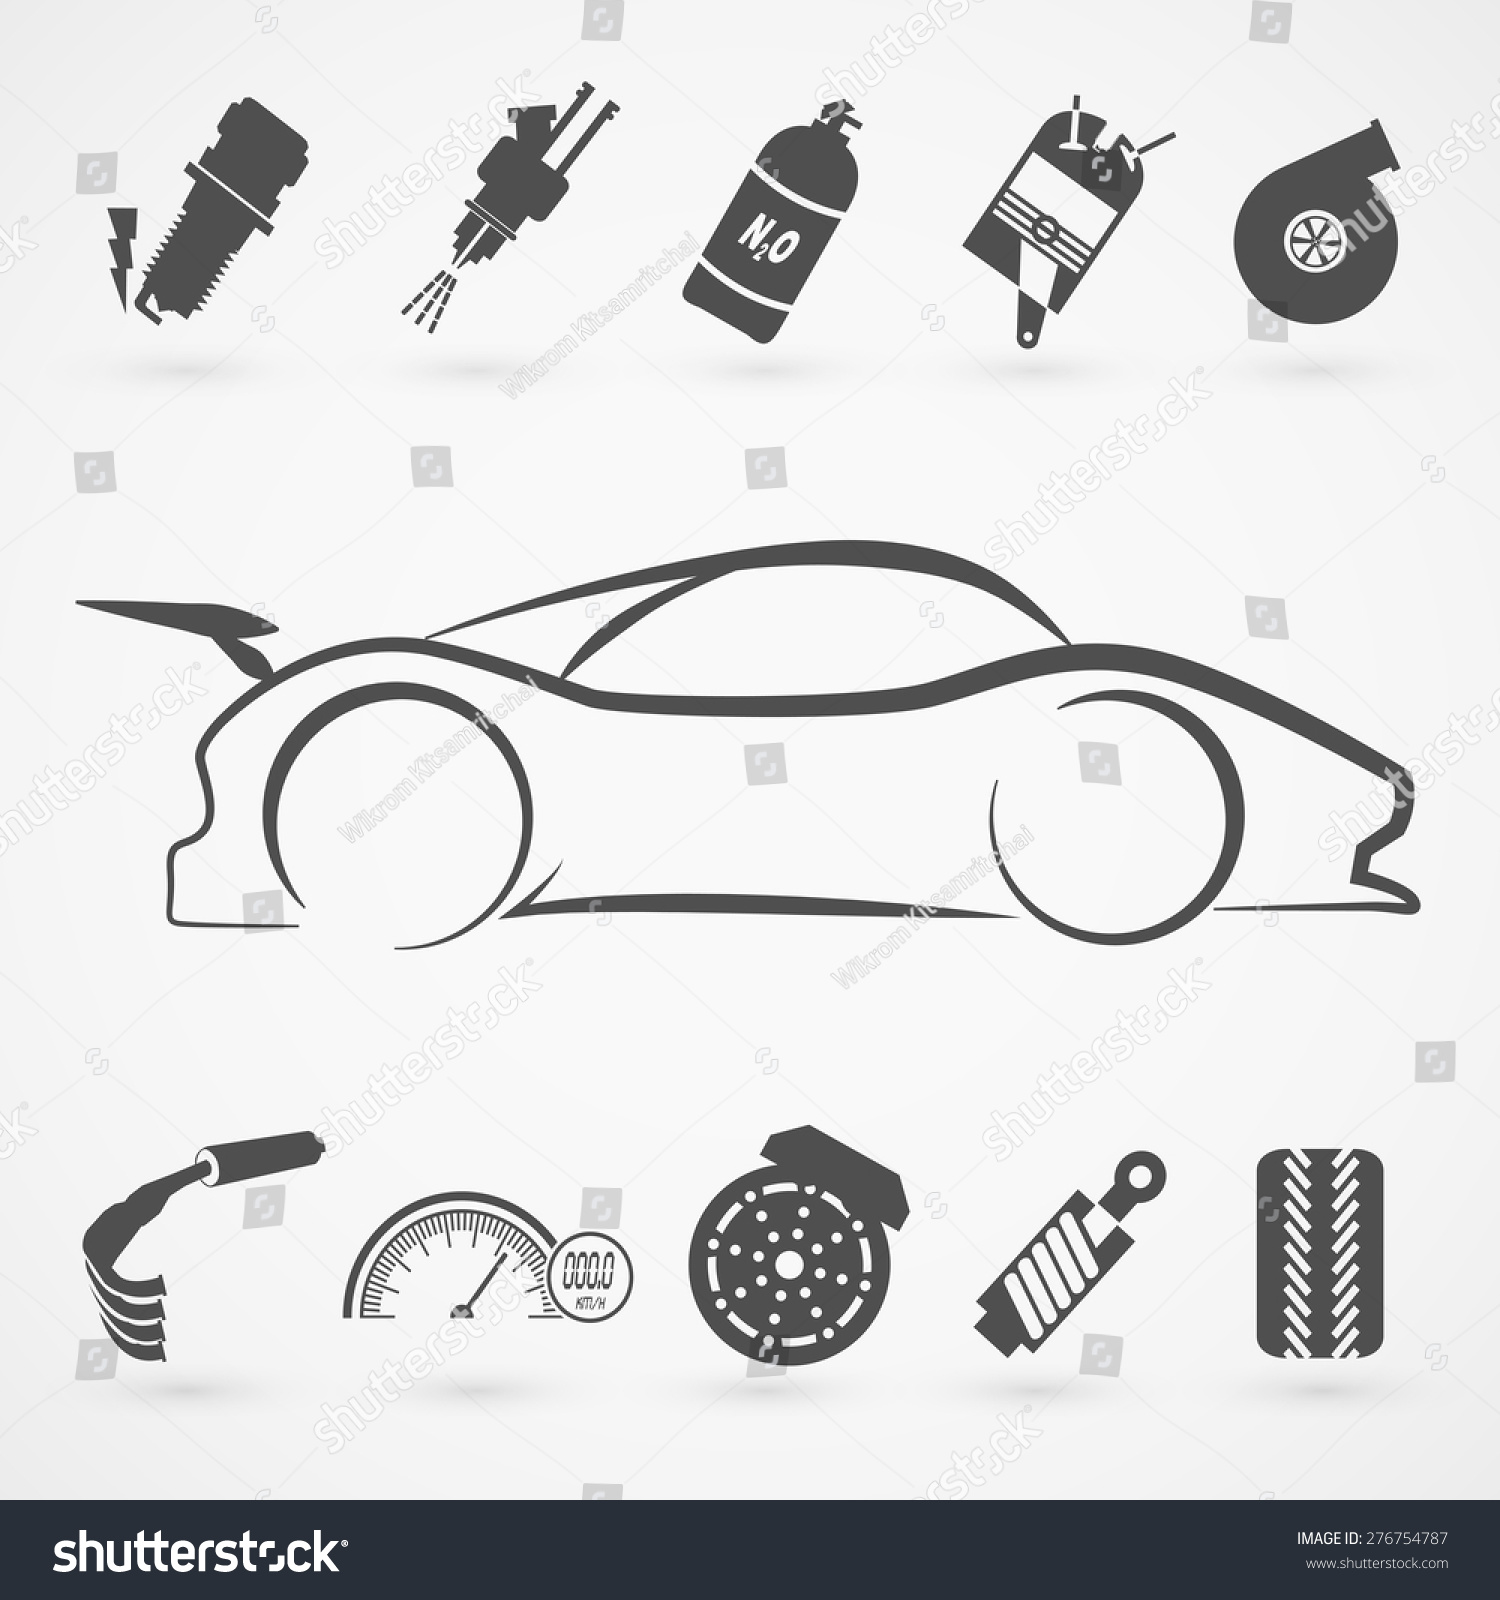 Race car logo hand draw with many modification item. EPS10 Art vector